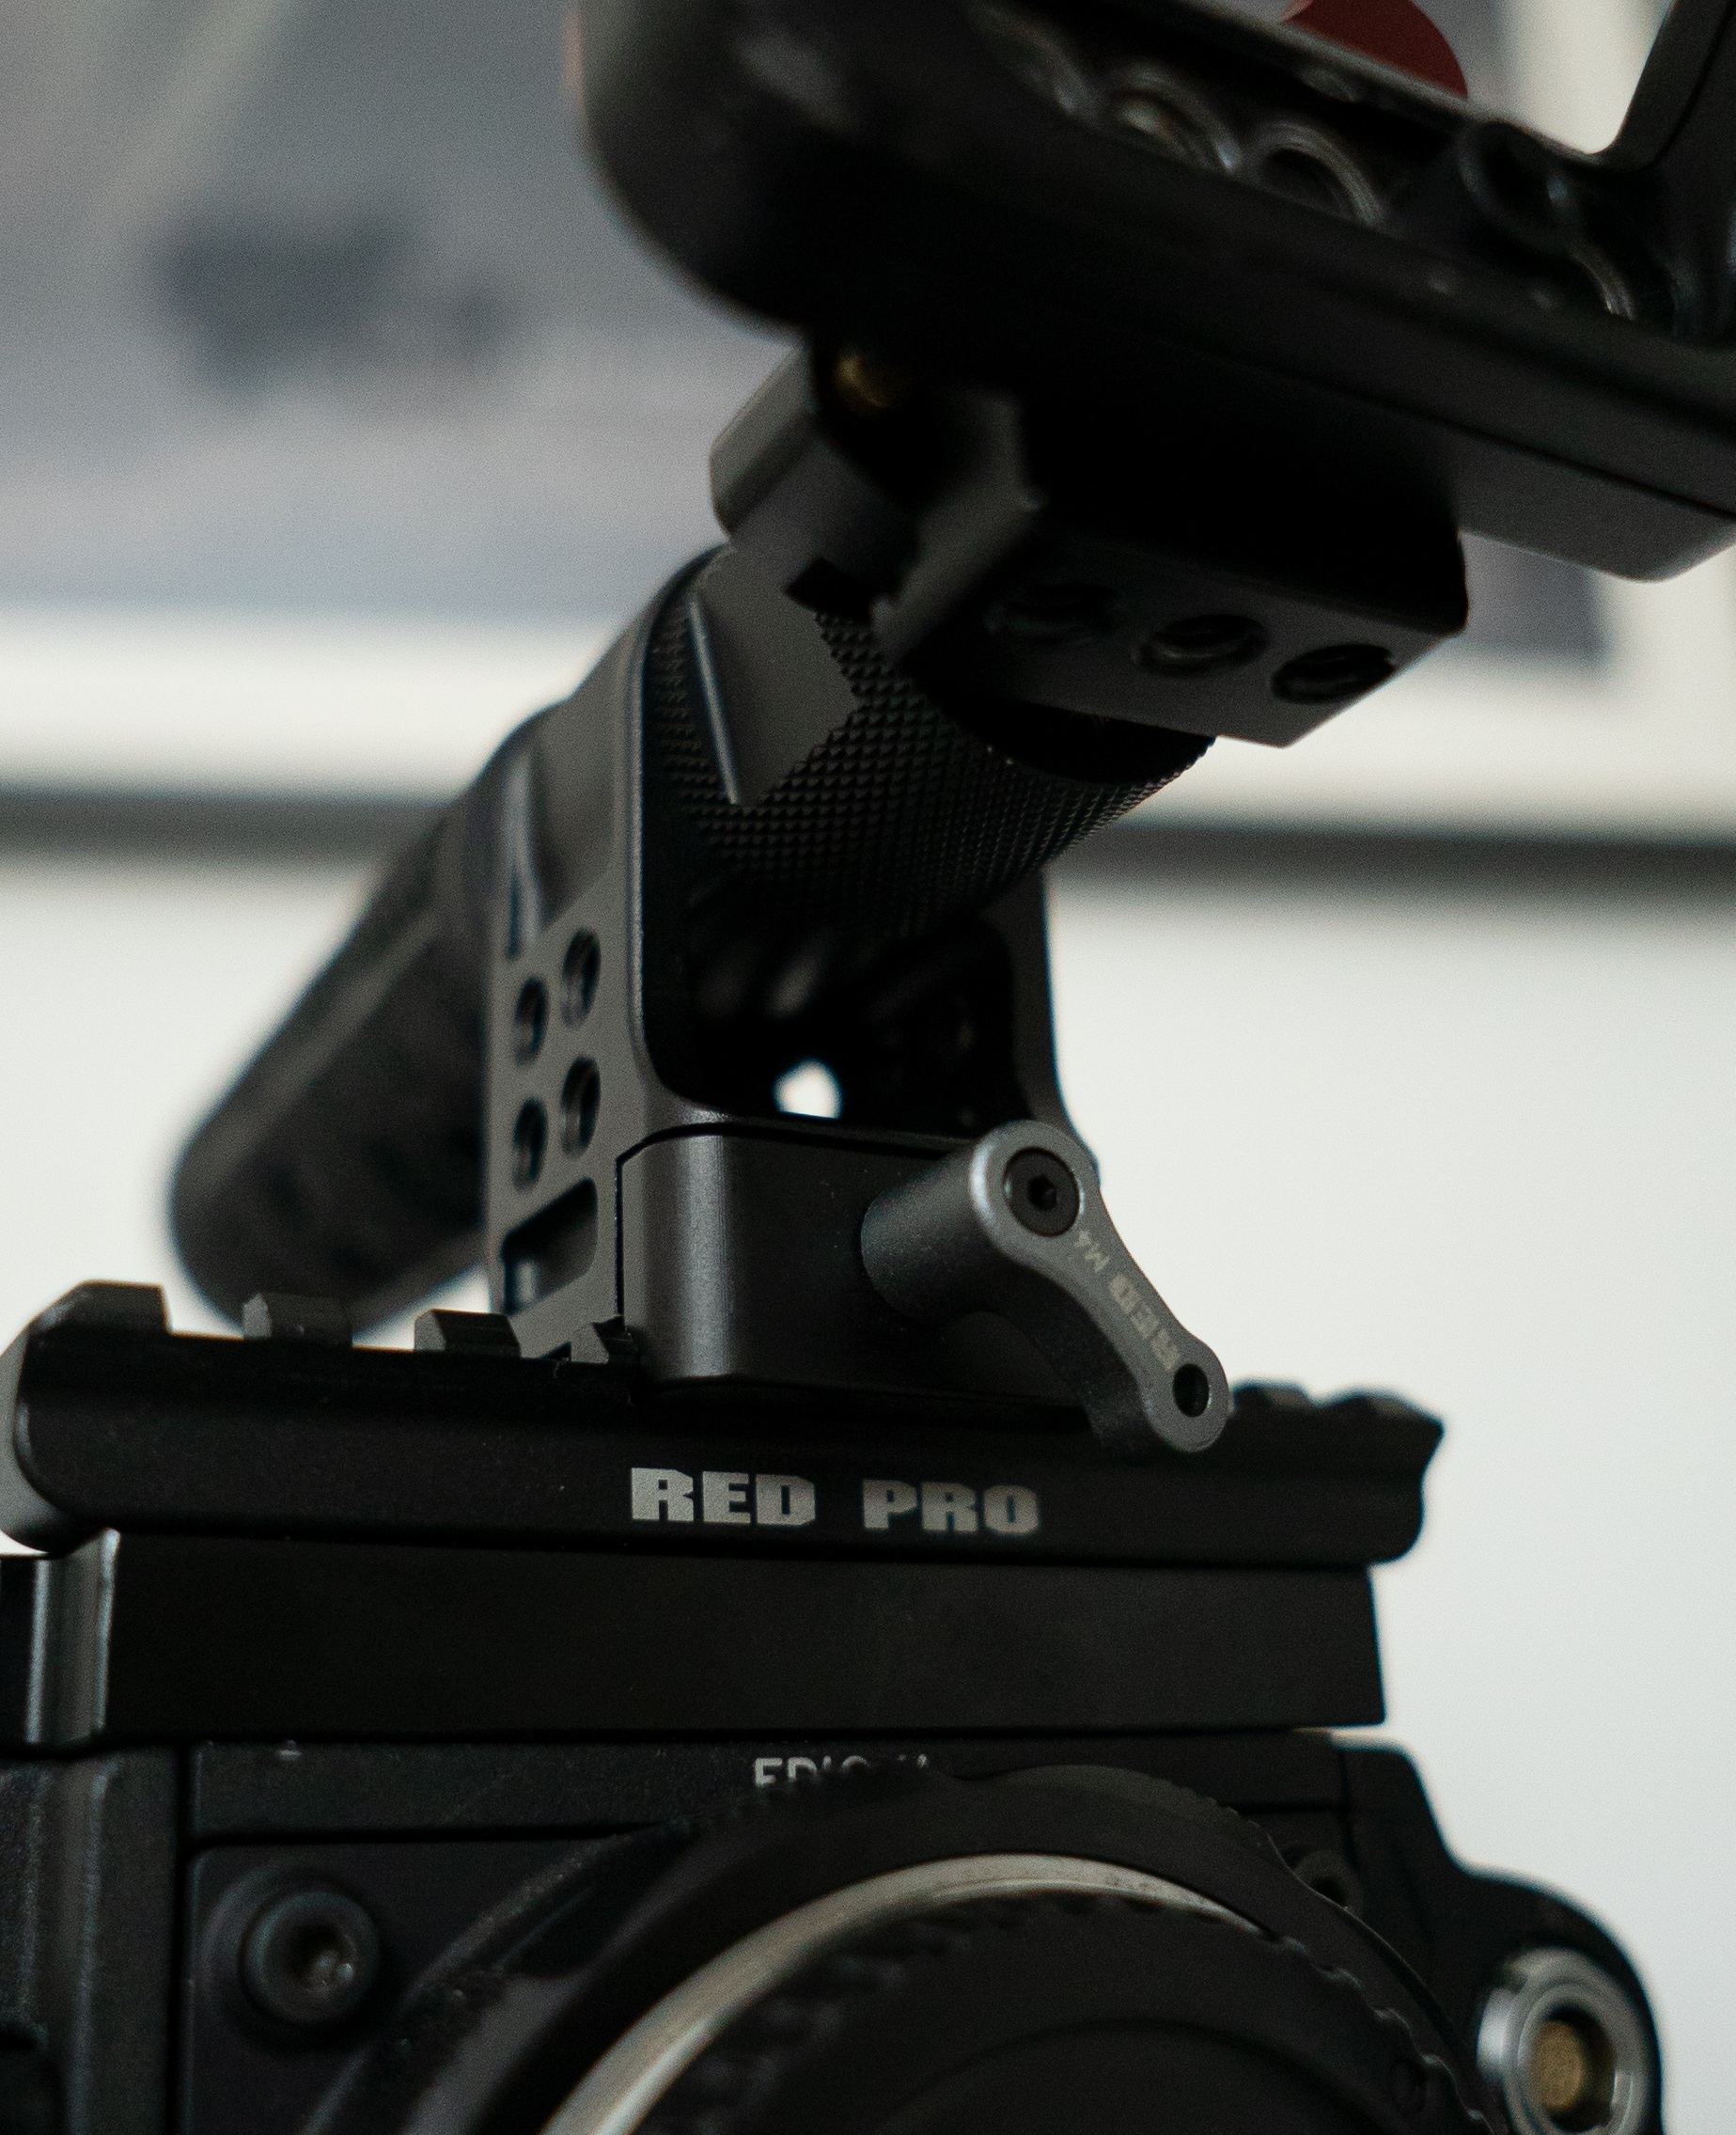 QUICK RELEASE - MOUNTING COMPONENTS